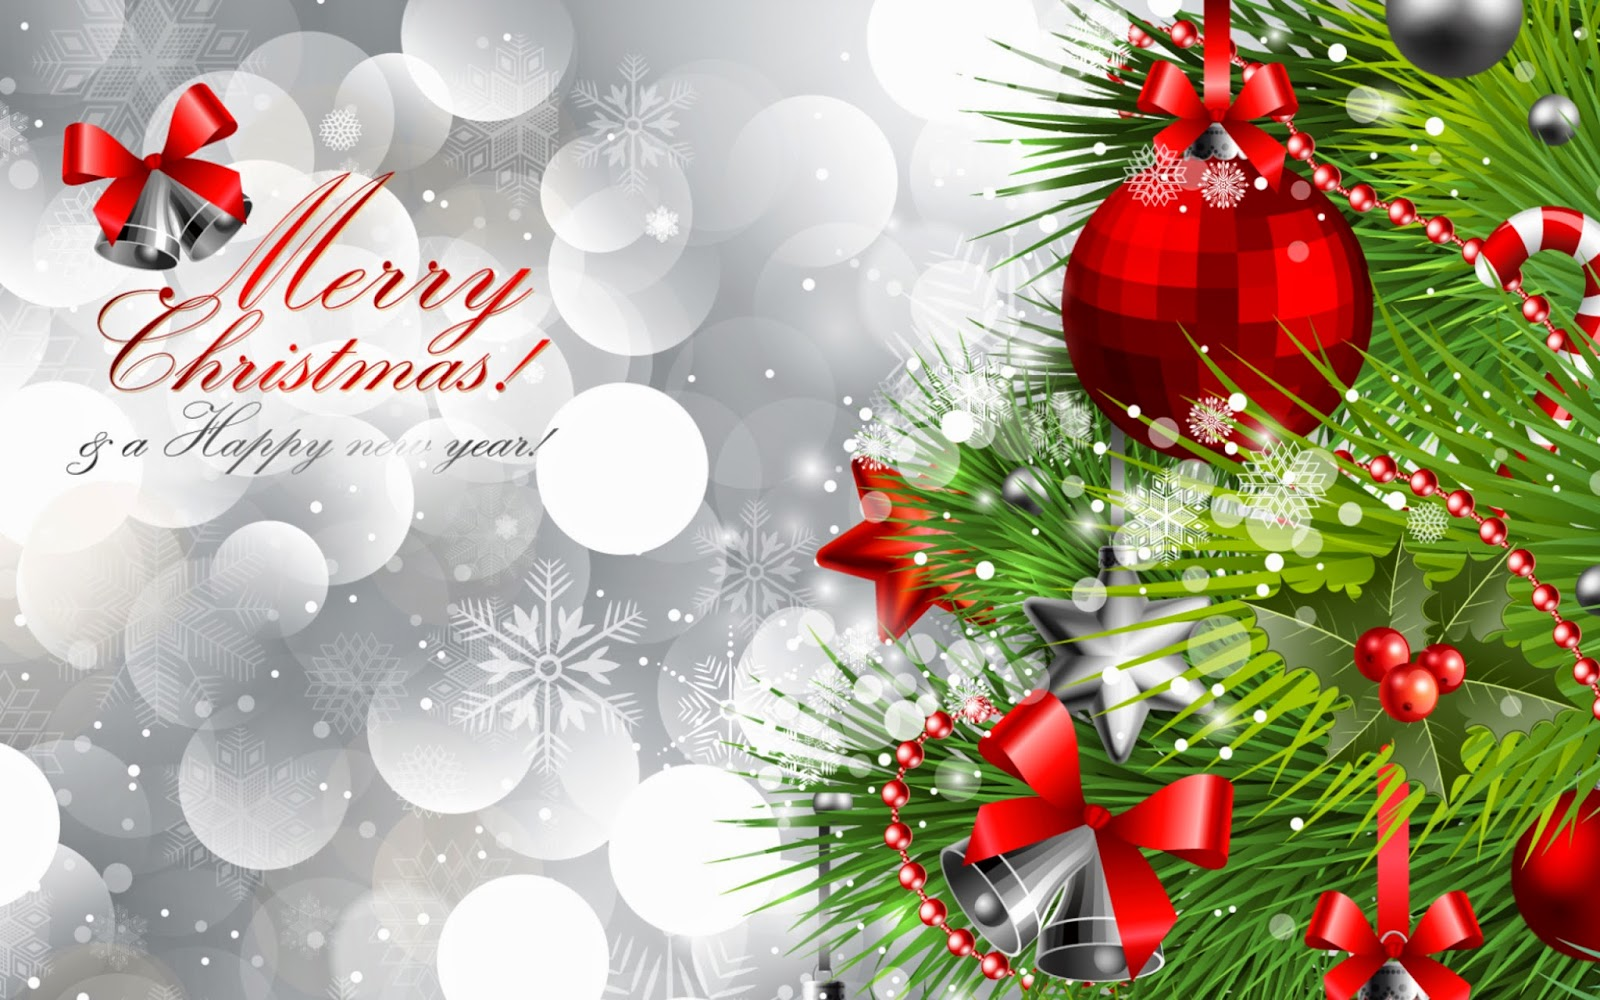 i wish you a merry christmas and a happy new year greetings images ...